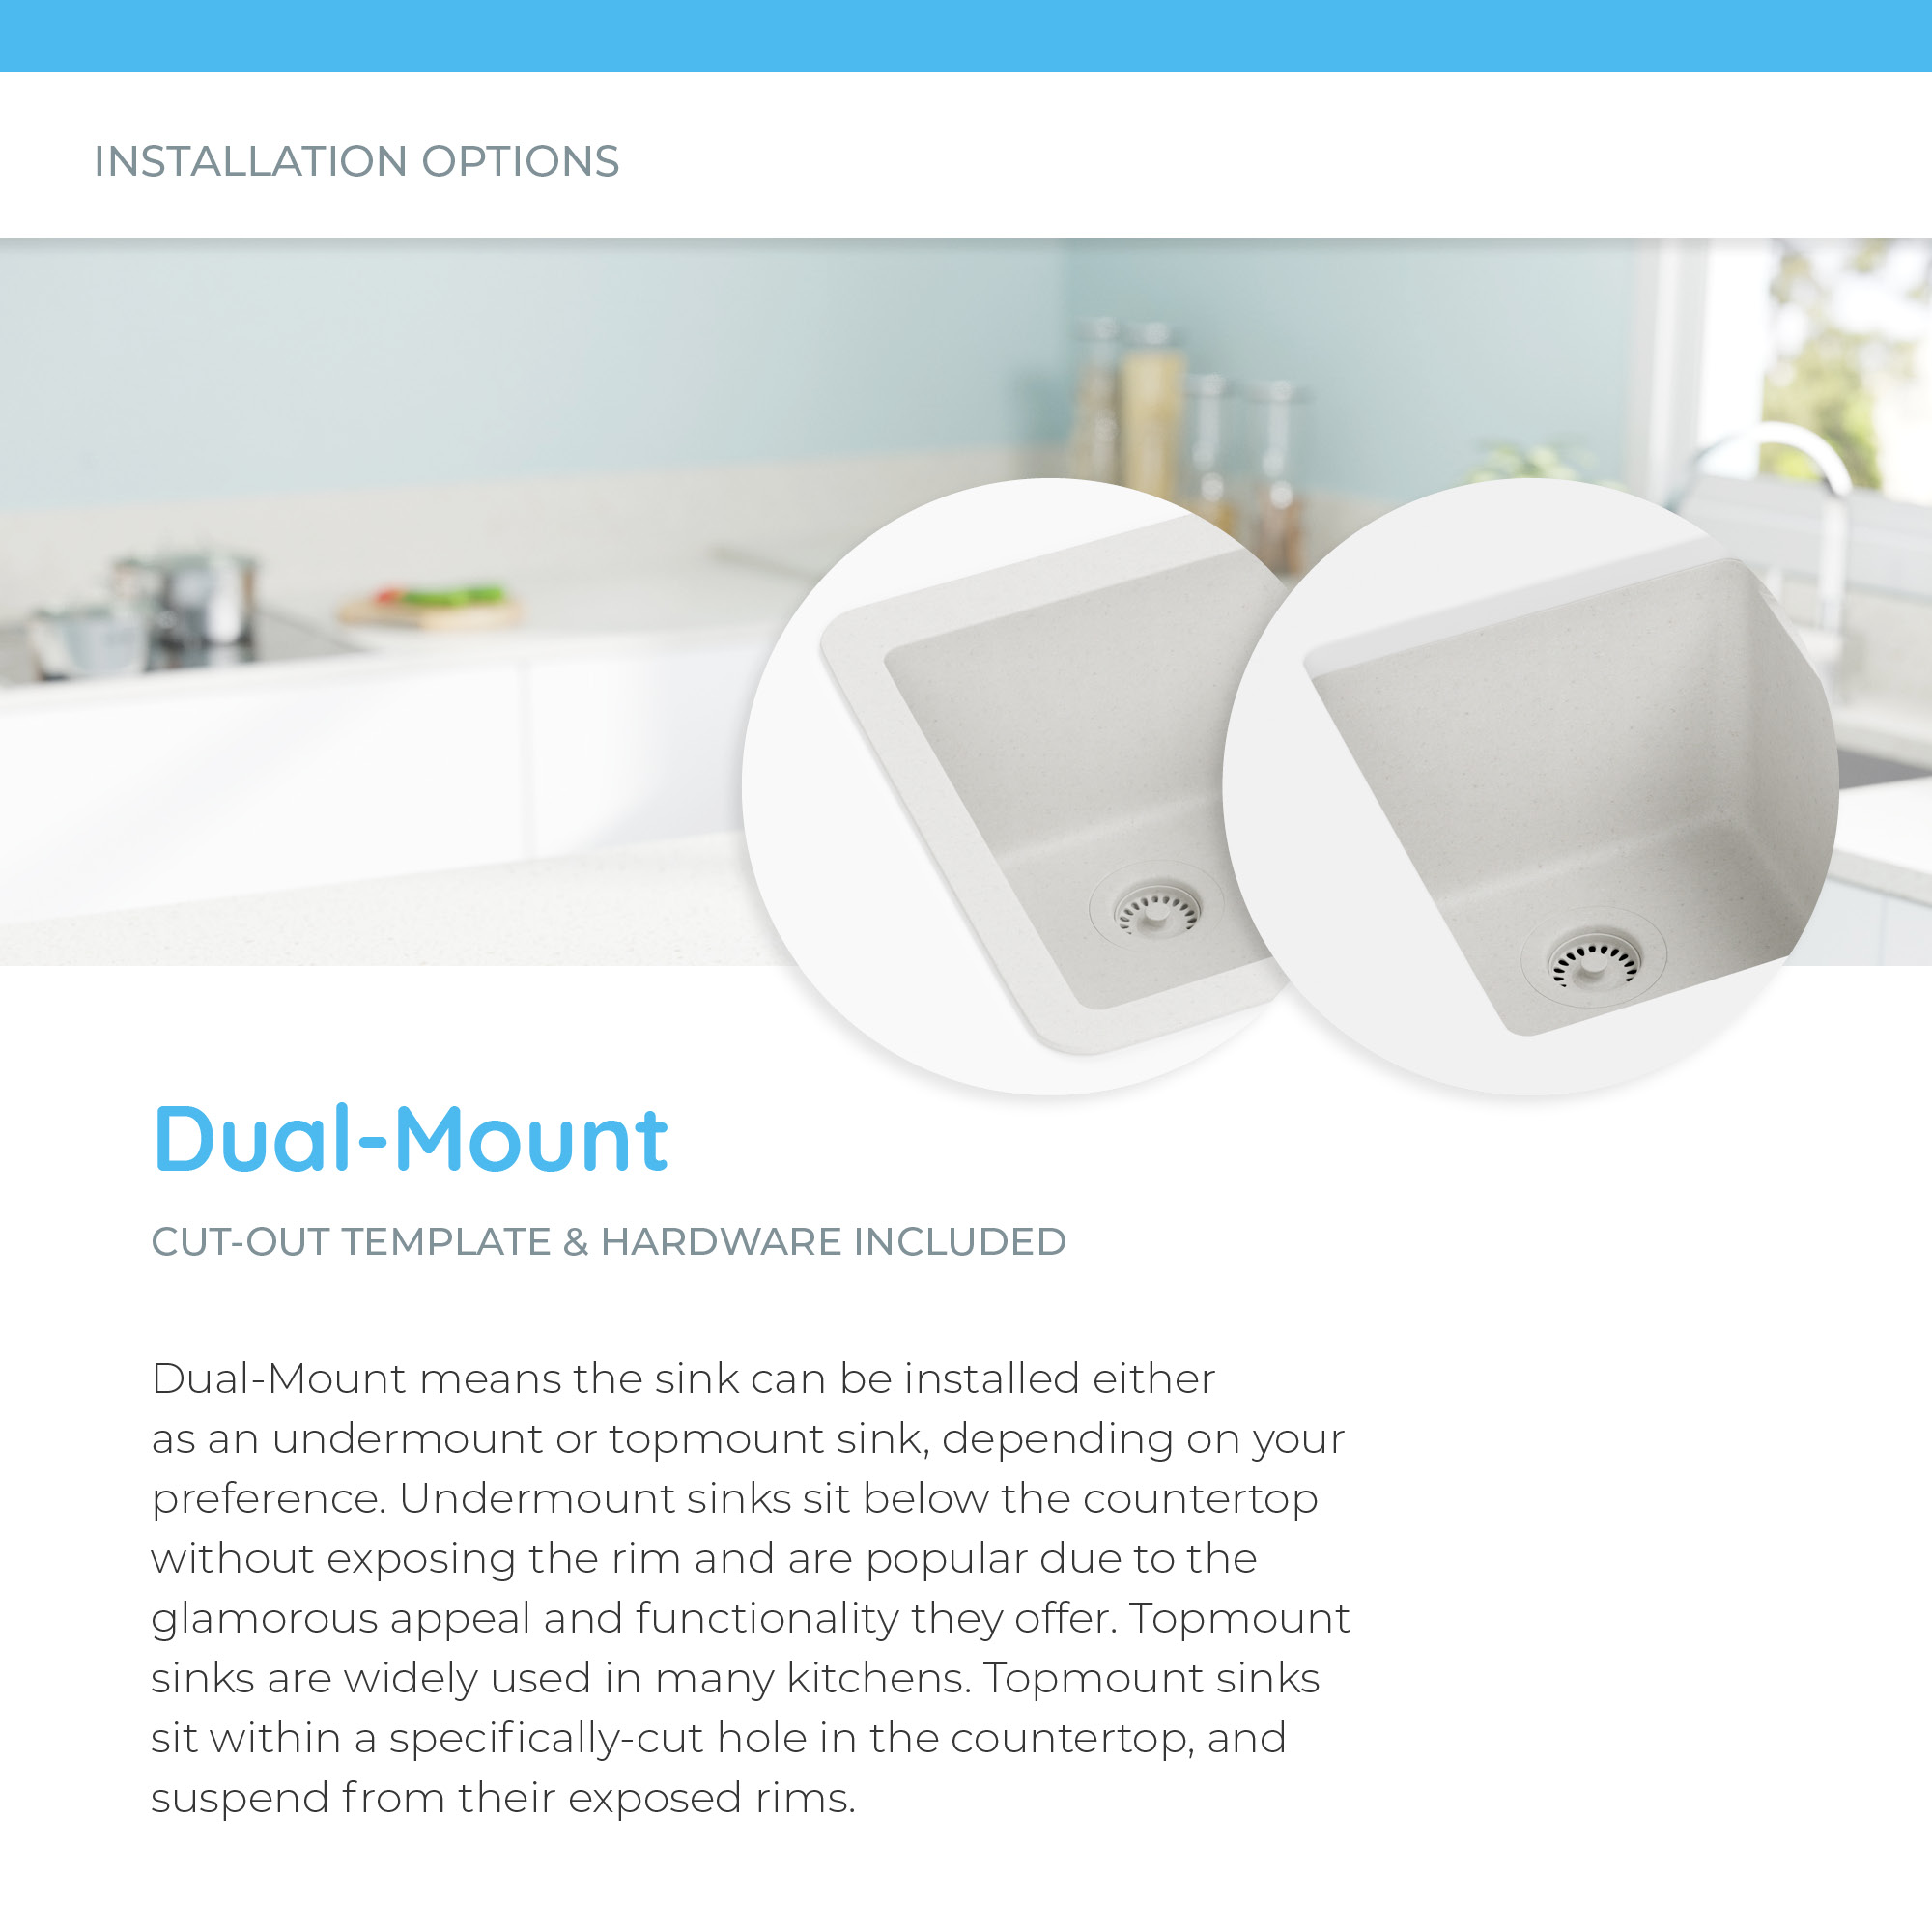 Installation options for dual-mount sink